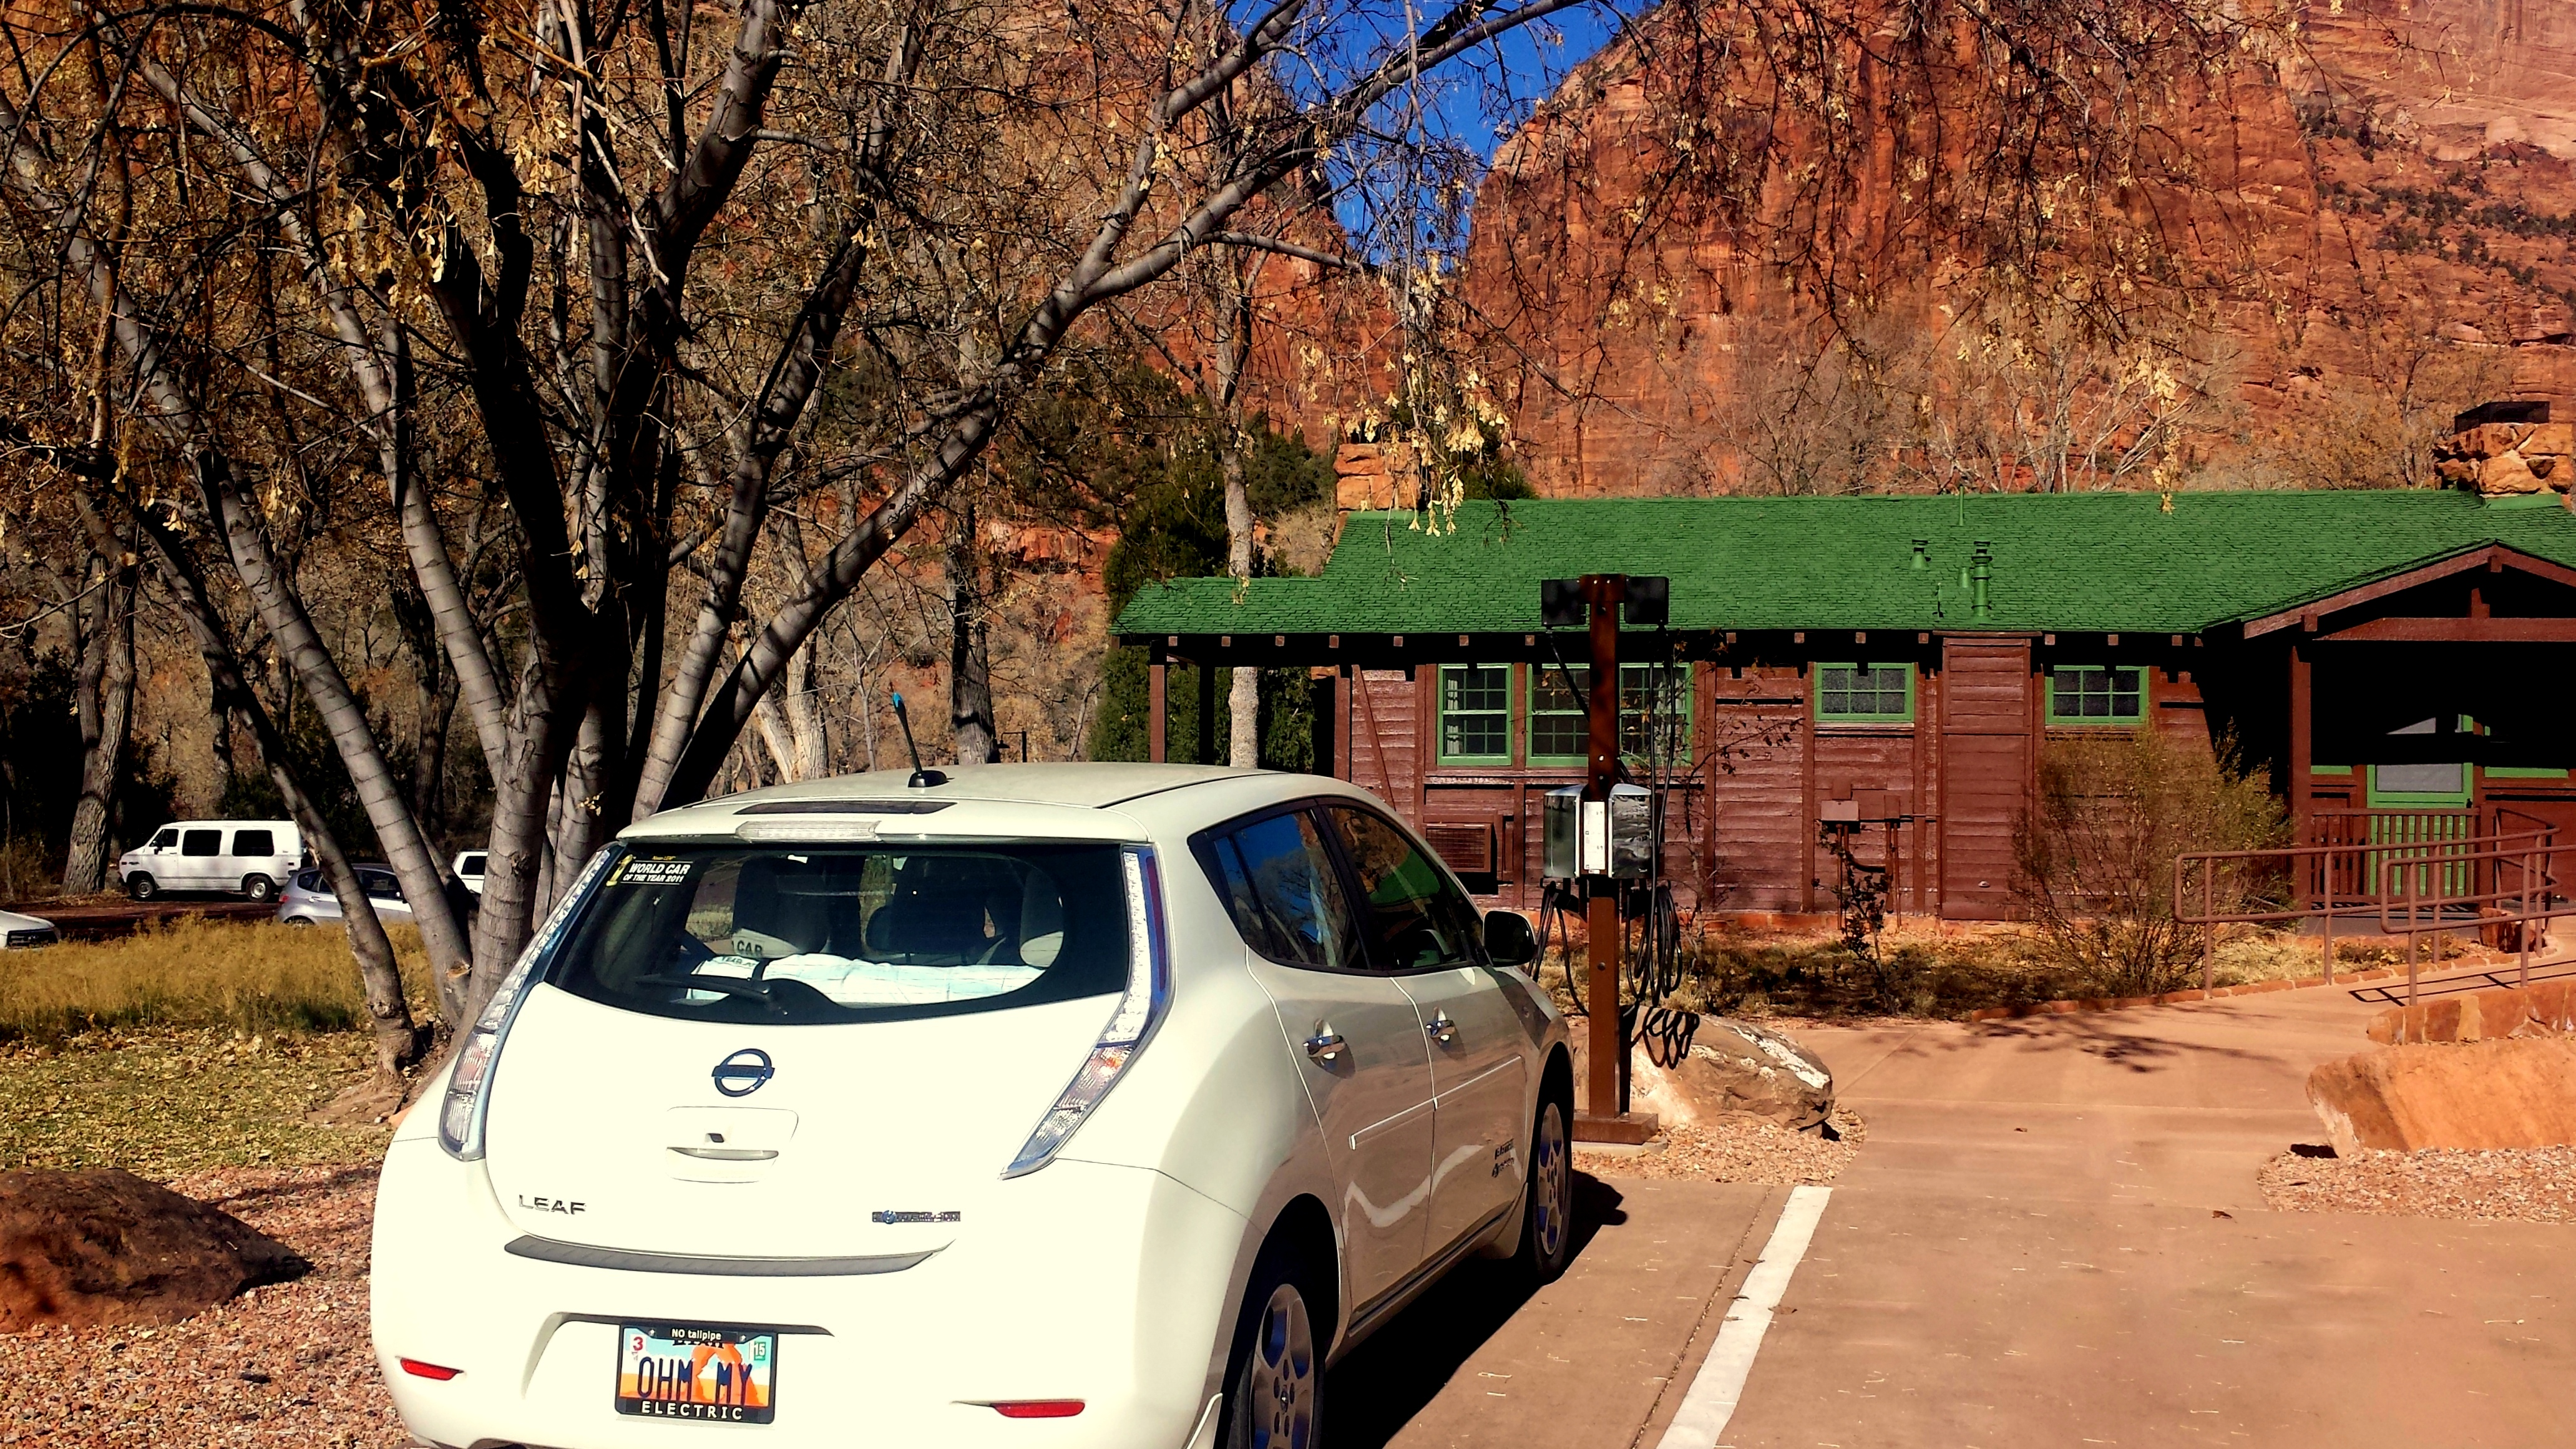 Priority Nissan Williamsburg >> Zion Lodge Installs Electric Car Charging Stations in Zion National Park